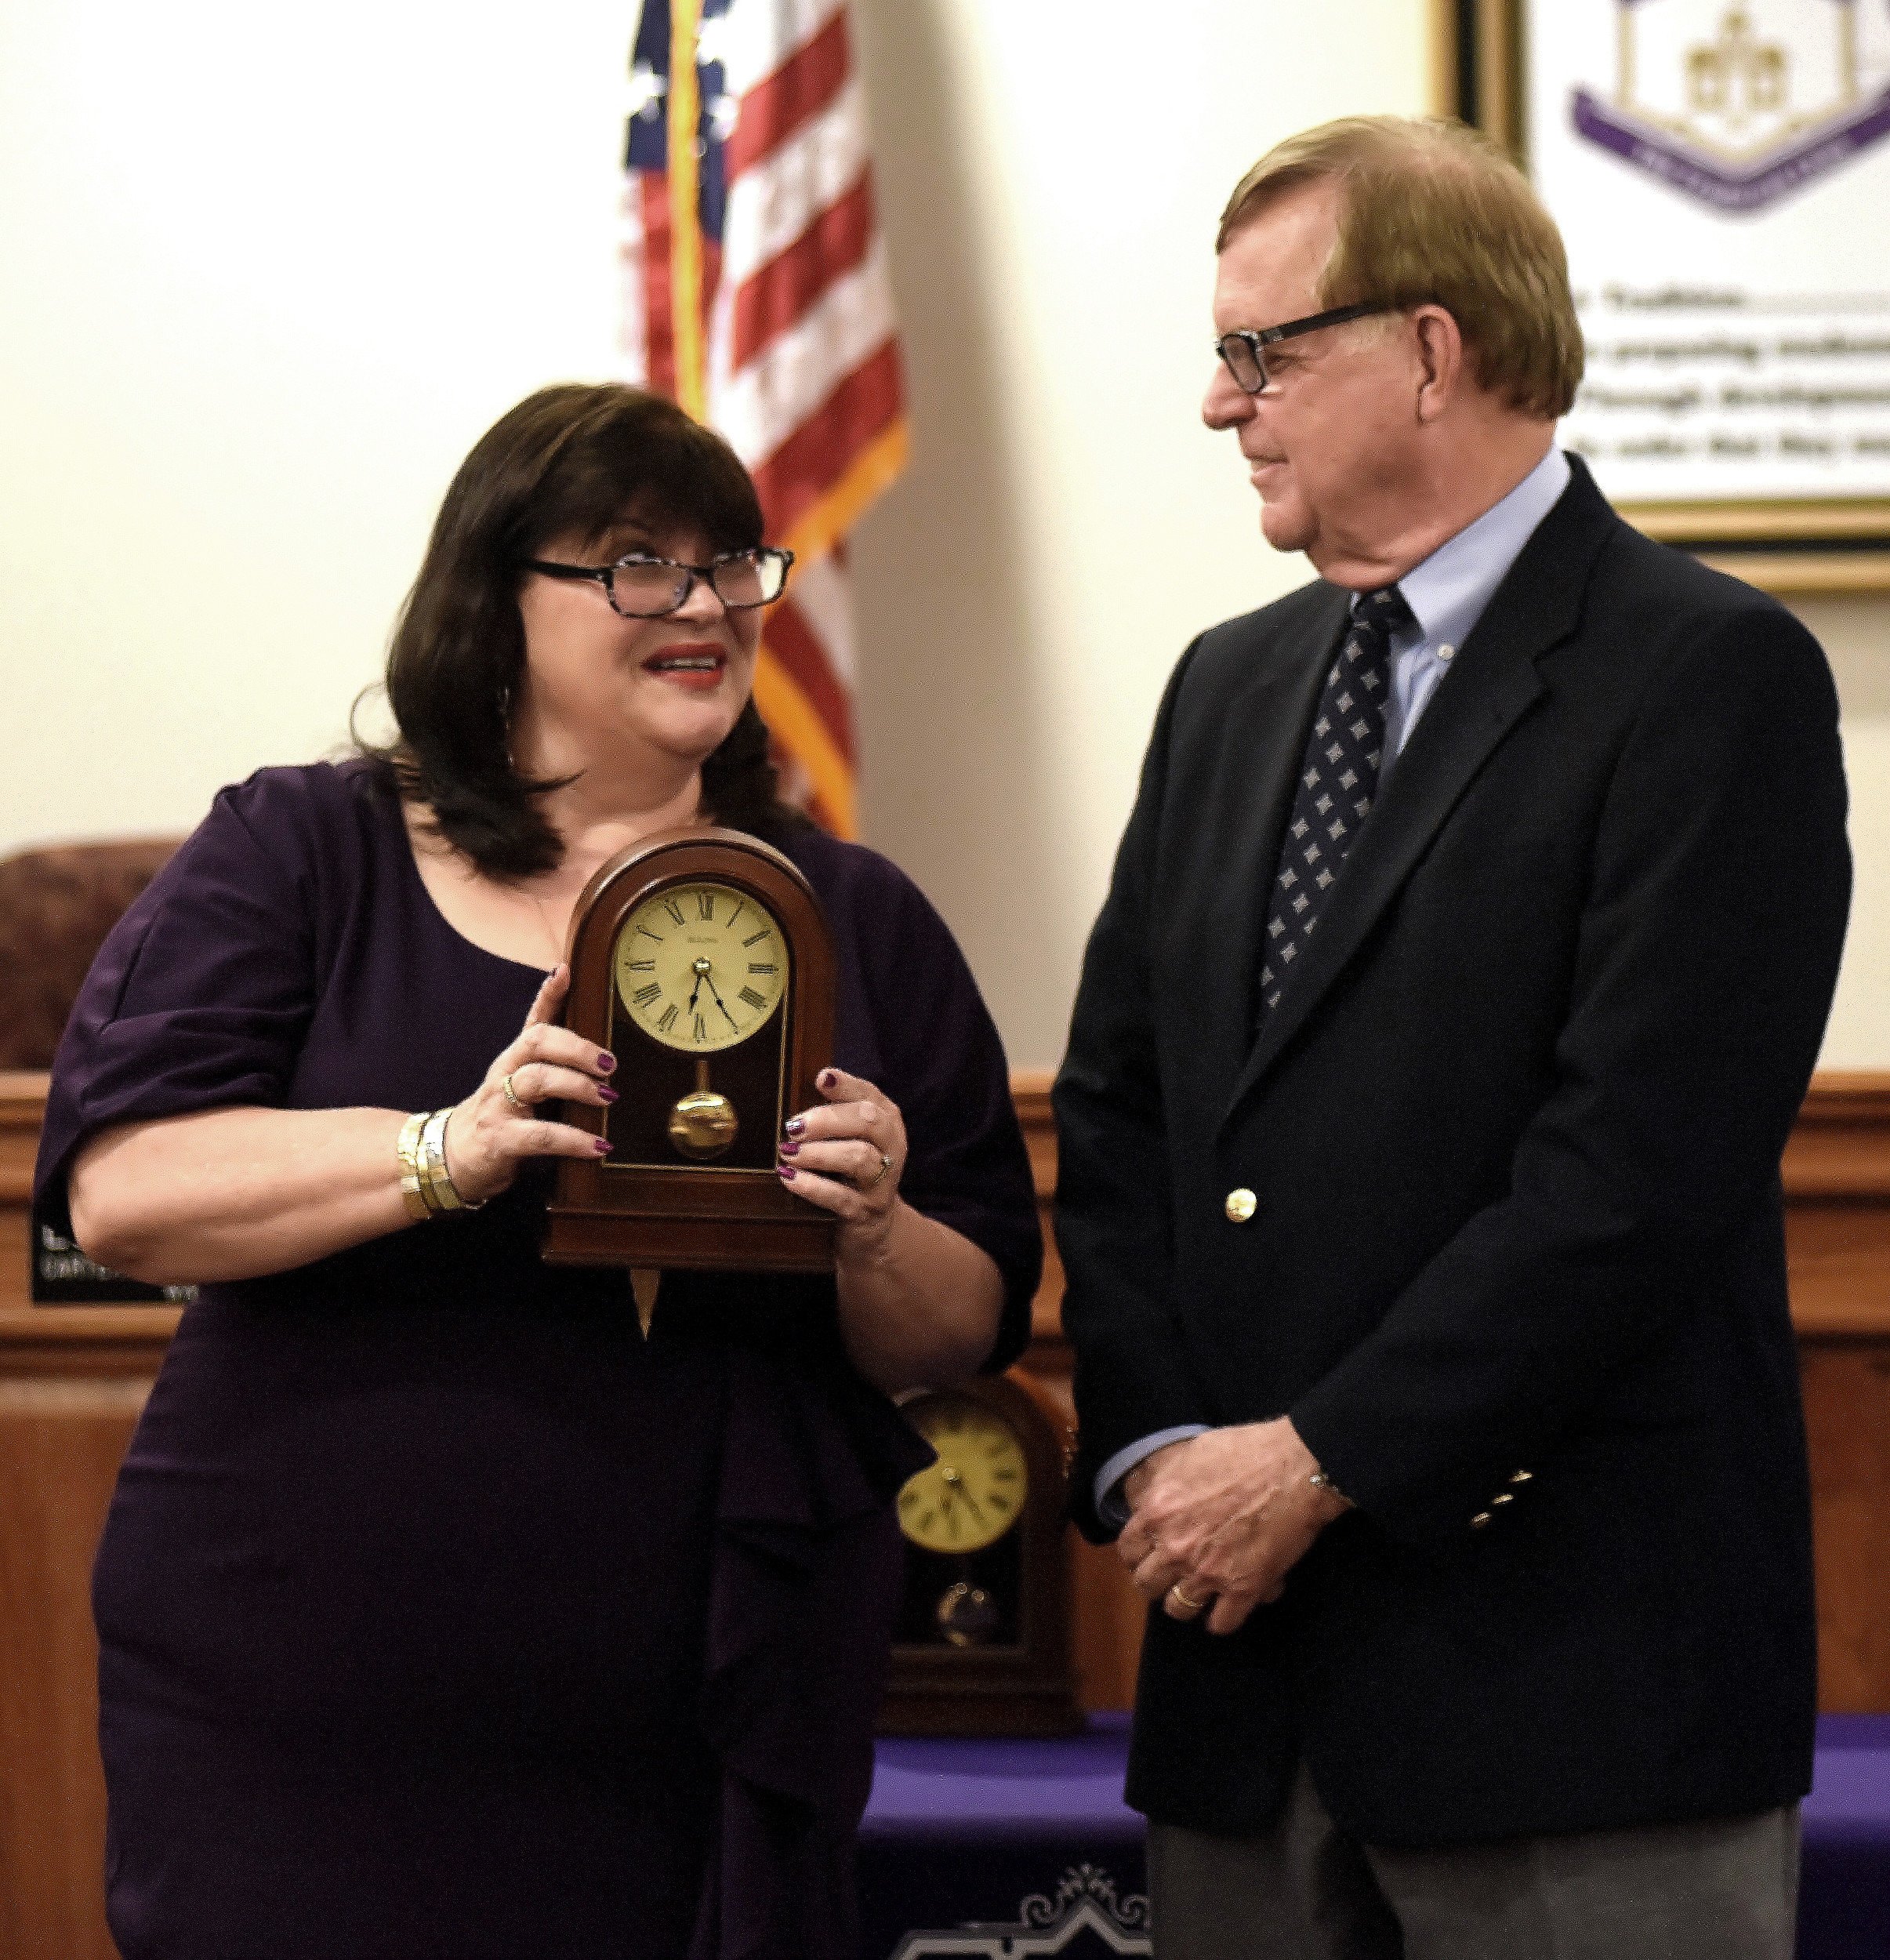 Cartersville City School Board President Kelley Dial presents retiring superintendent Dr. Howard Hinesley with a retirement clock at his final Cartersville City School Board meeting Monday night.